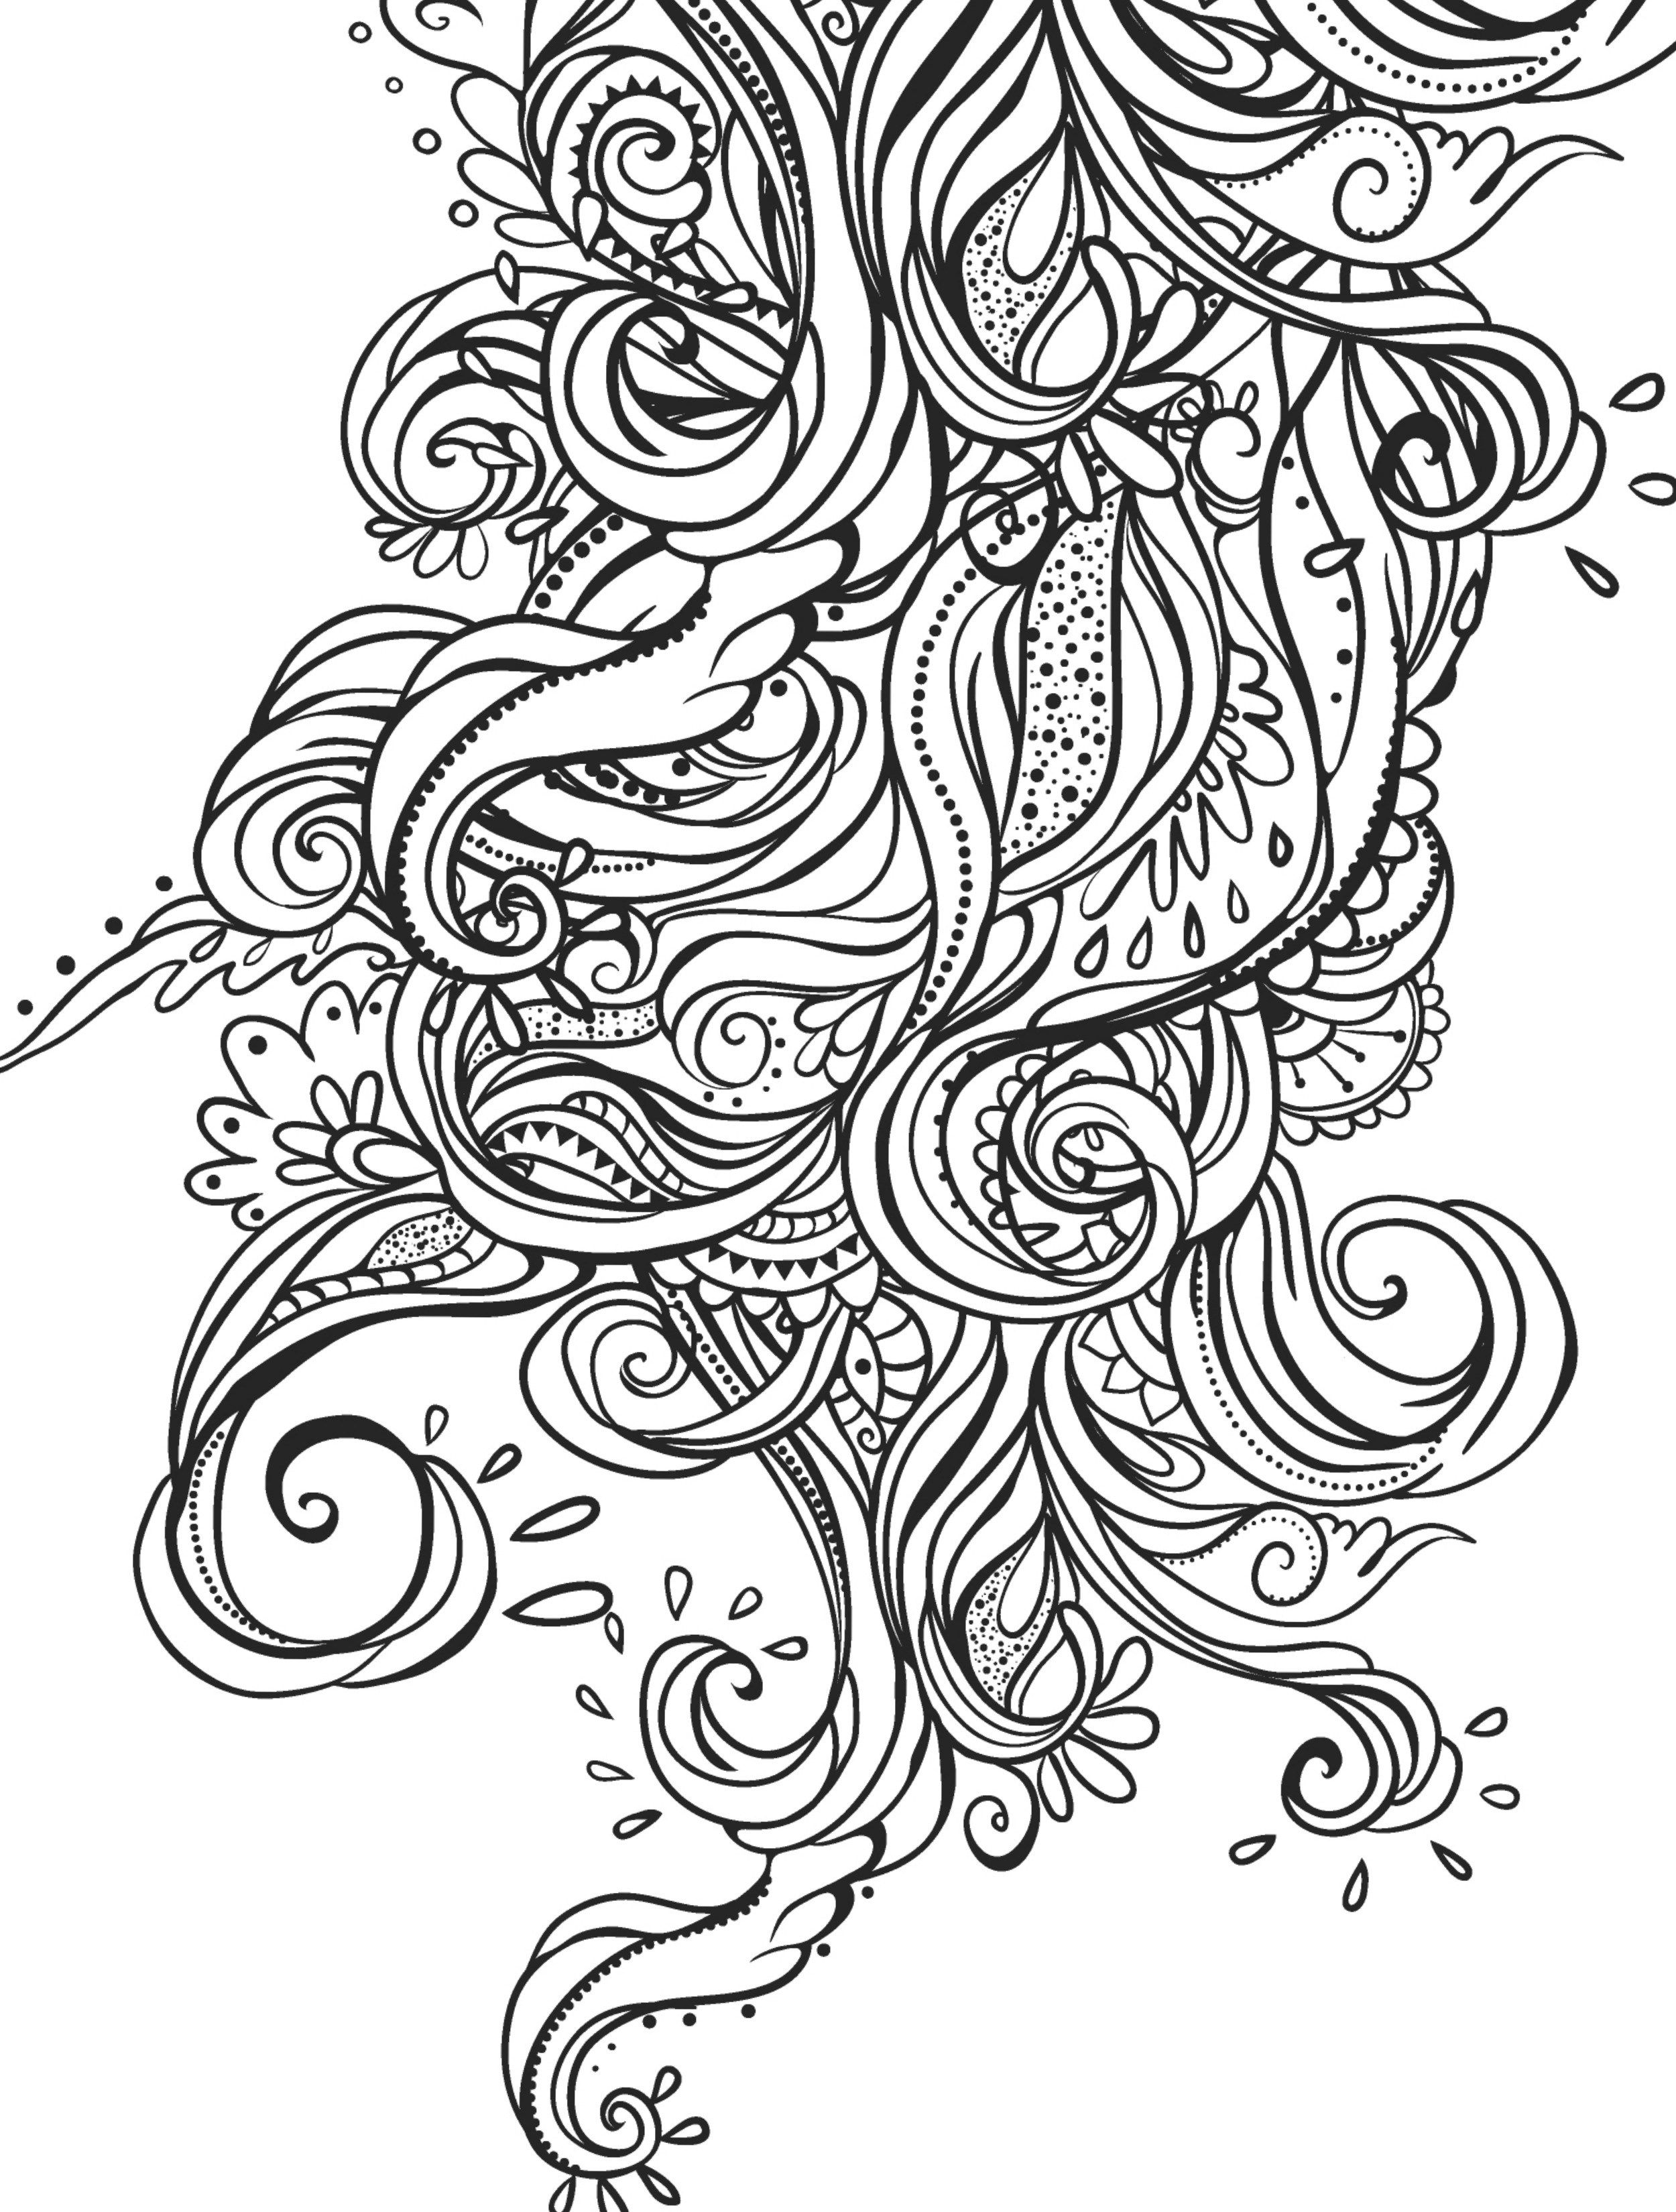 15 CRAZY Busy Coloring Pages for Adults Skull coloring